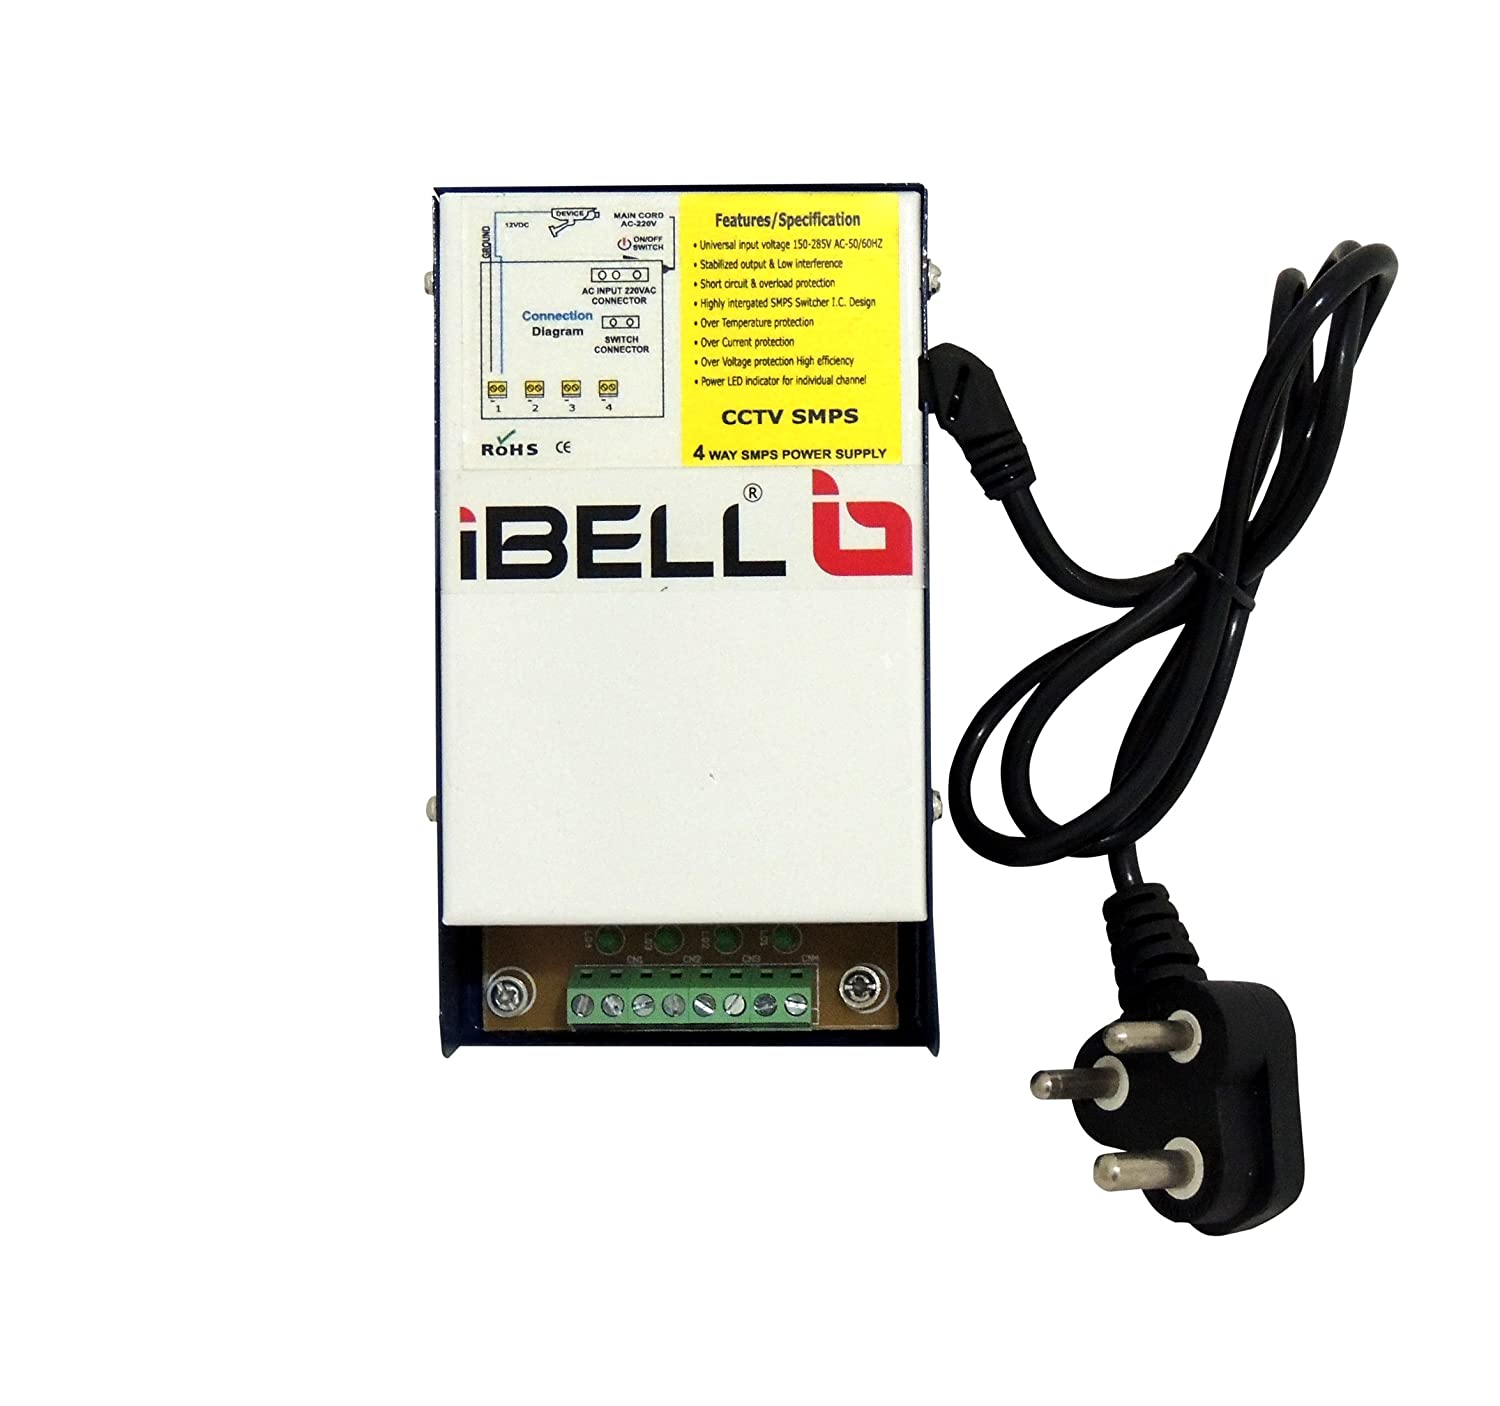 Buy Ibell Cp404 4 Channel Smps For Cctv Surveillance Spy Camera 12v Wiring Diagram Output 150 285v Power Supply Adaptor Up To Cameras Online At Low Price In